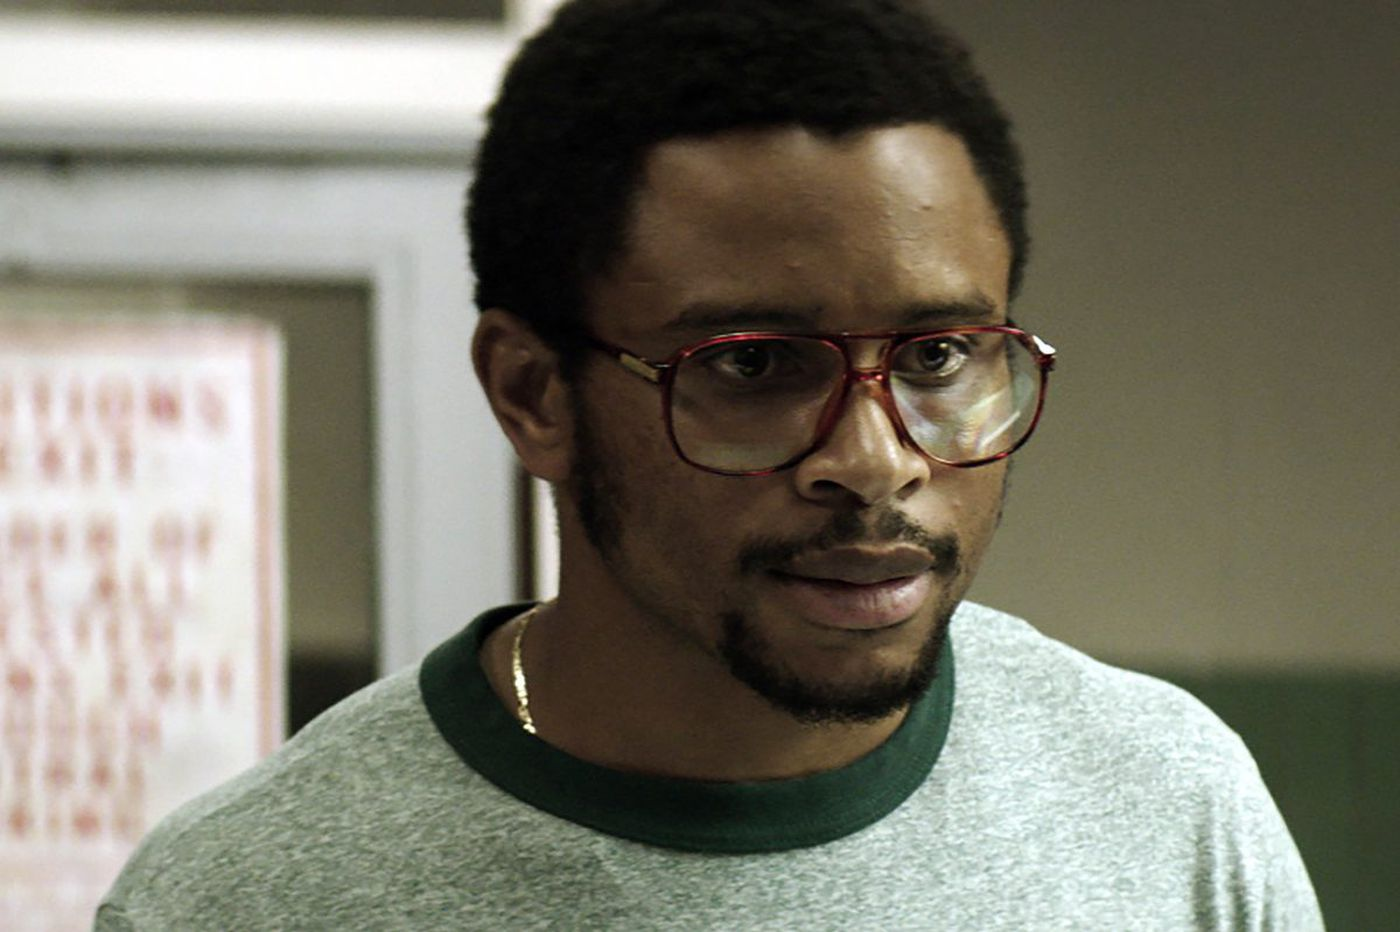 Former Eagle Nnamdi Asomugha tackles his first big acting challenge in 'Crown Heights'